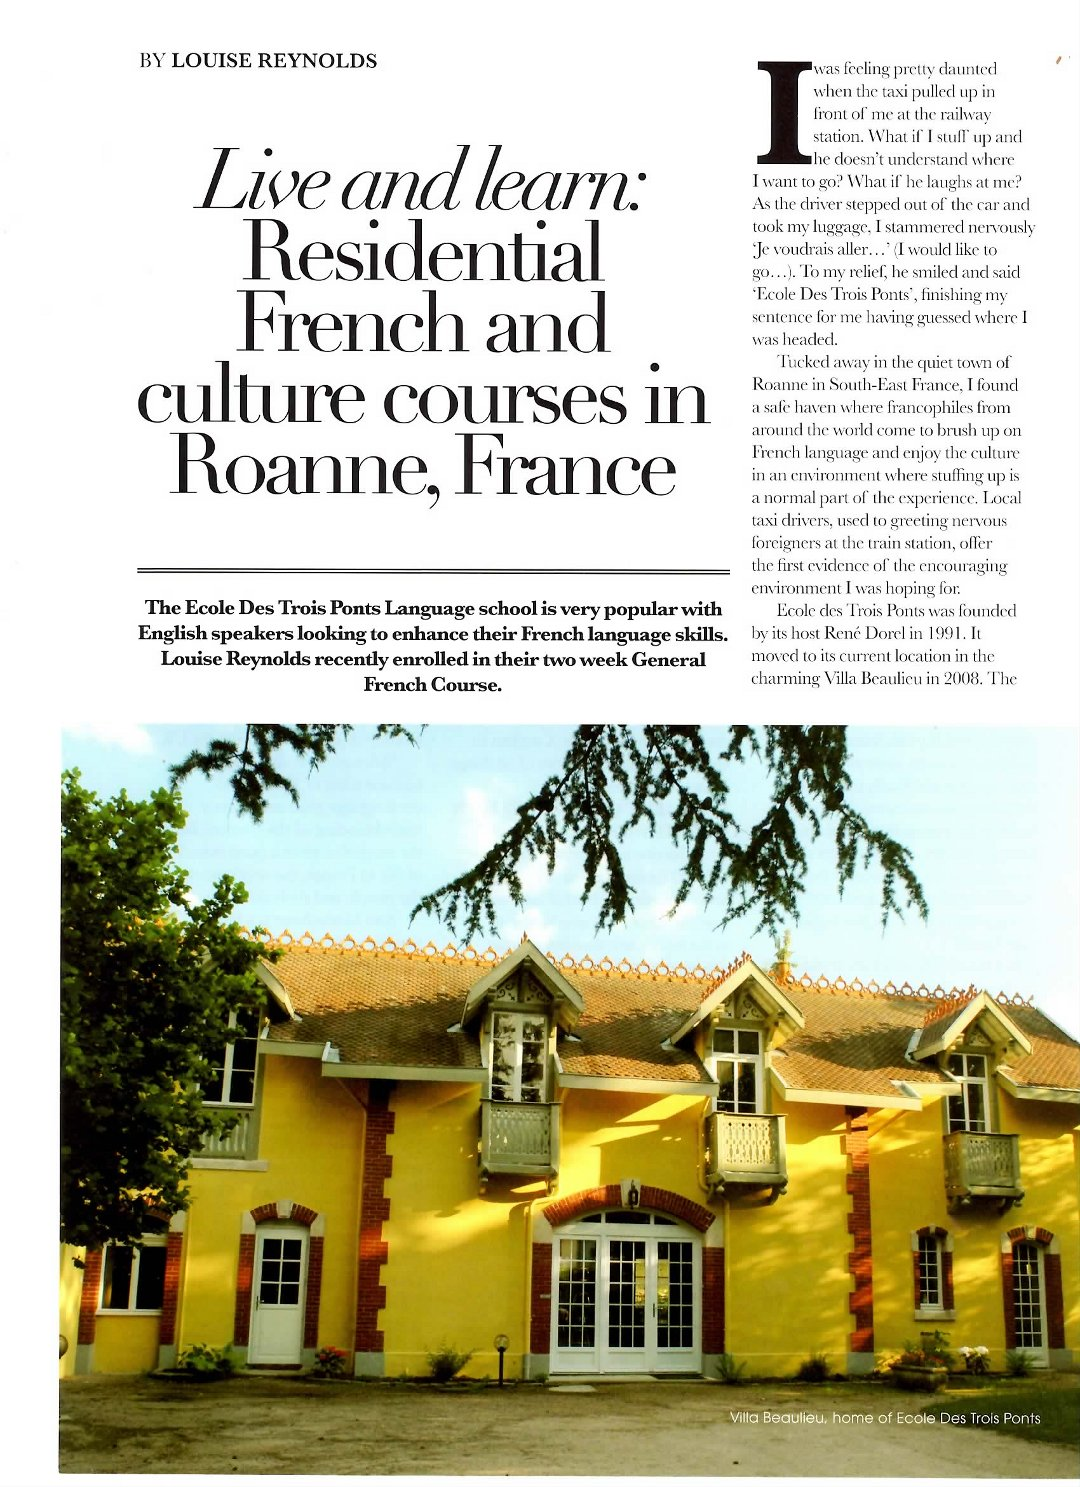 Residential French Courses